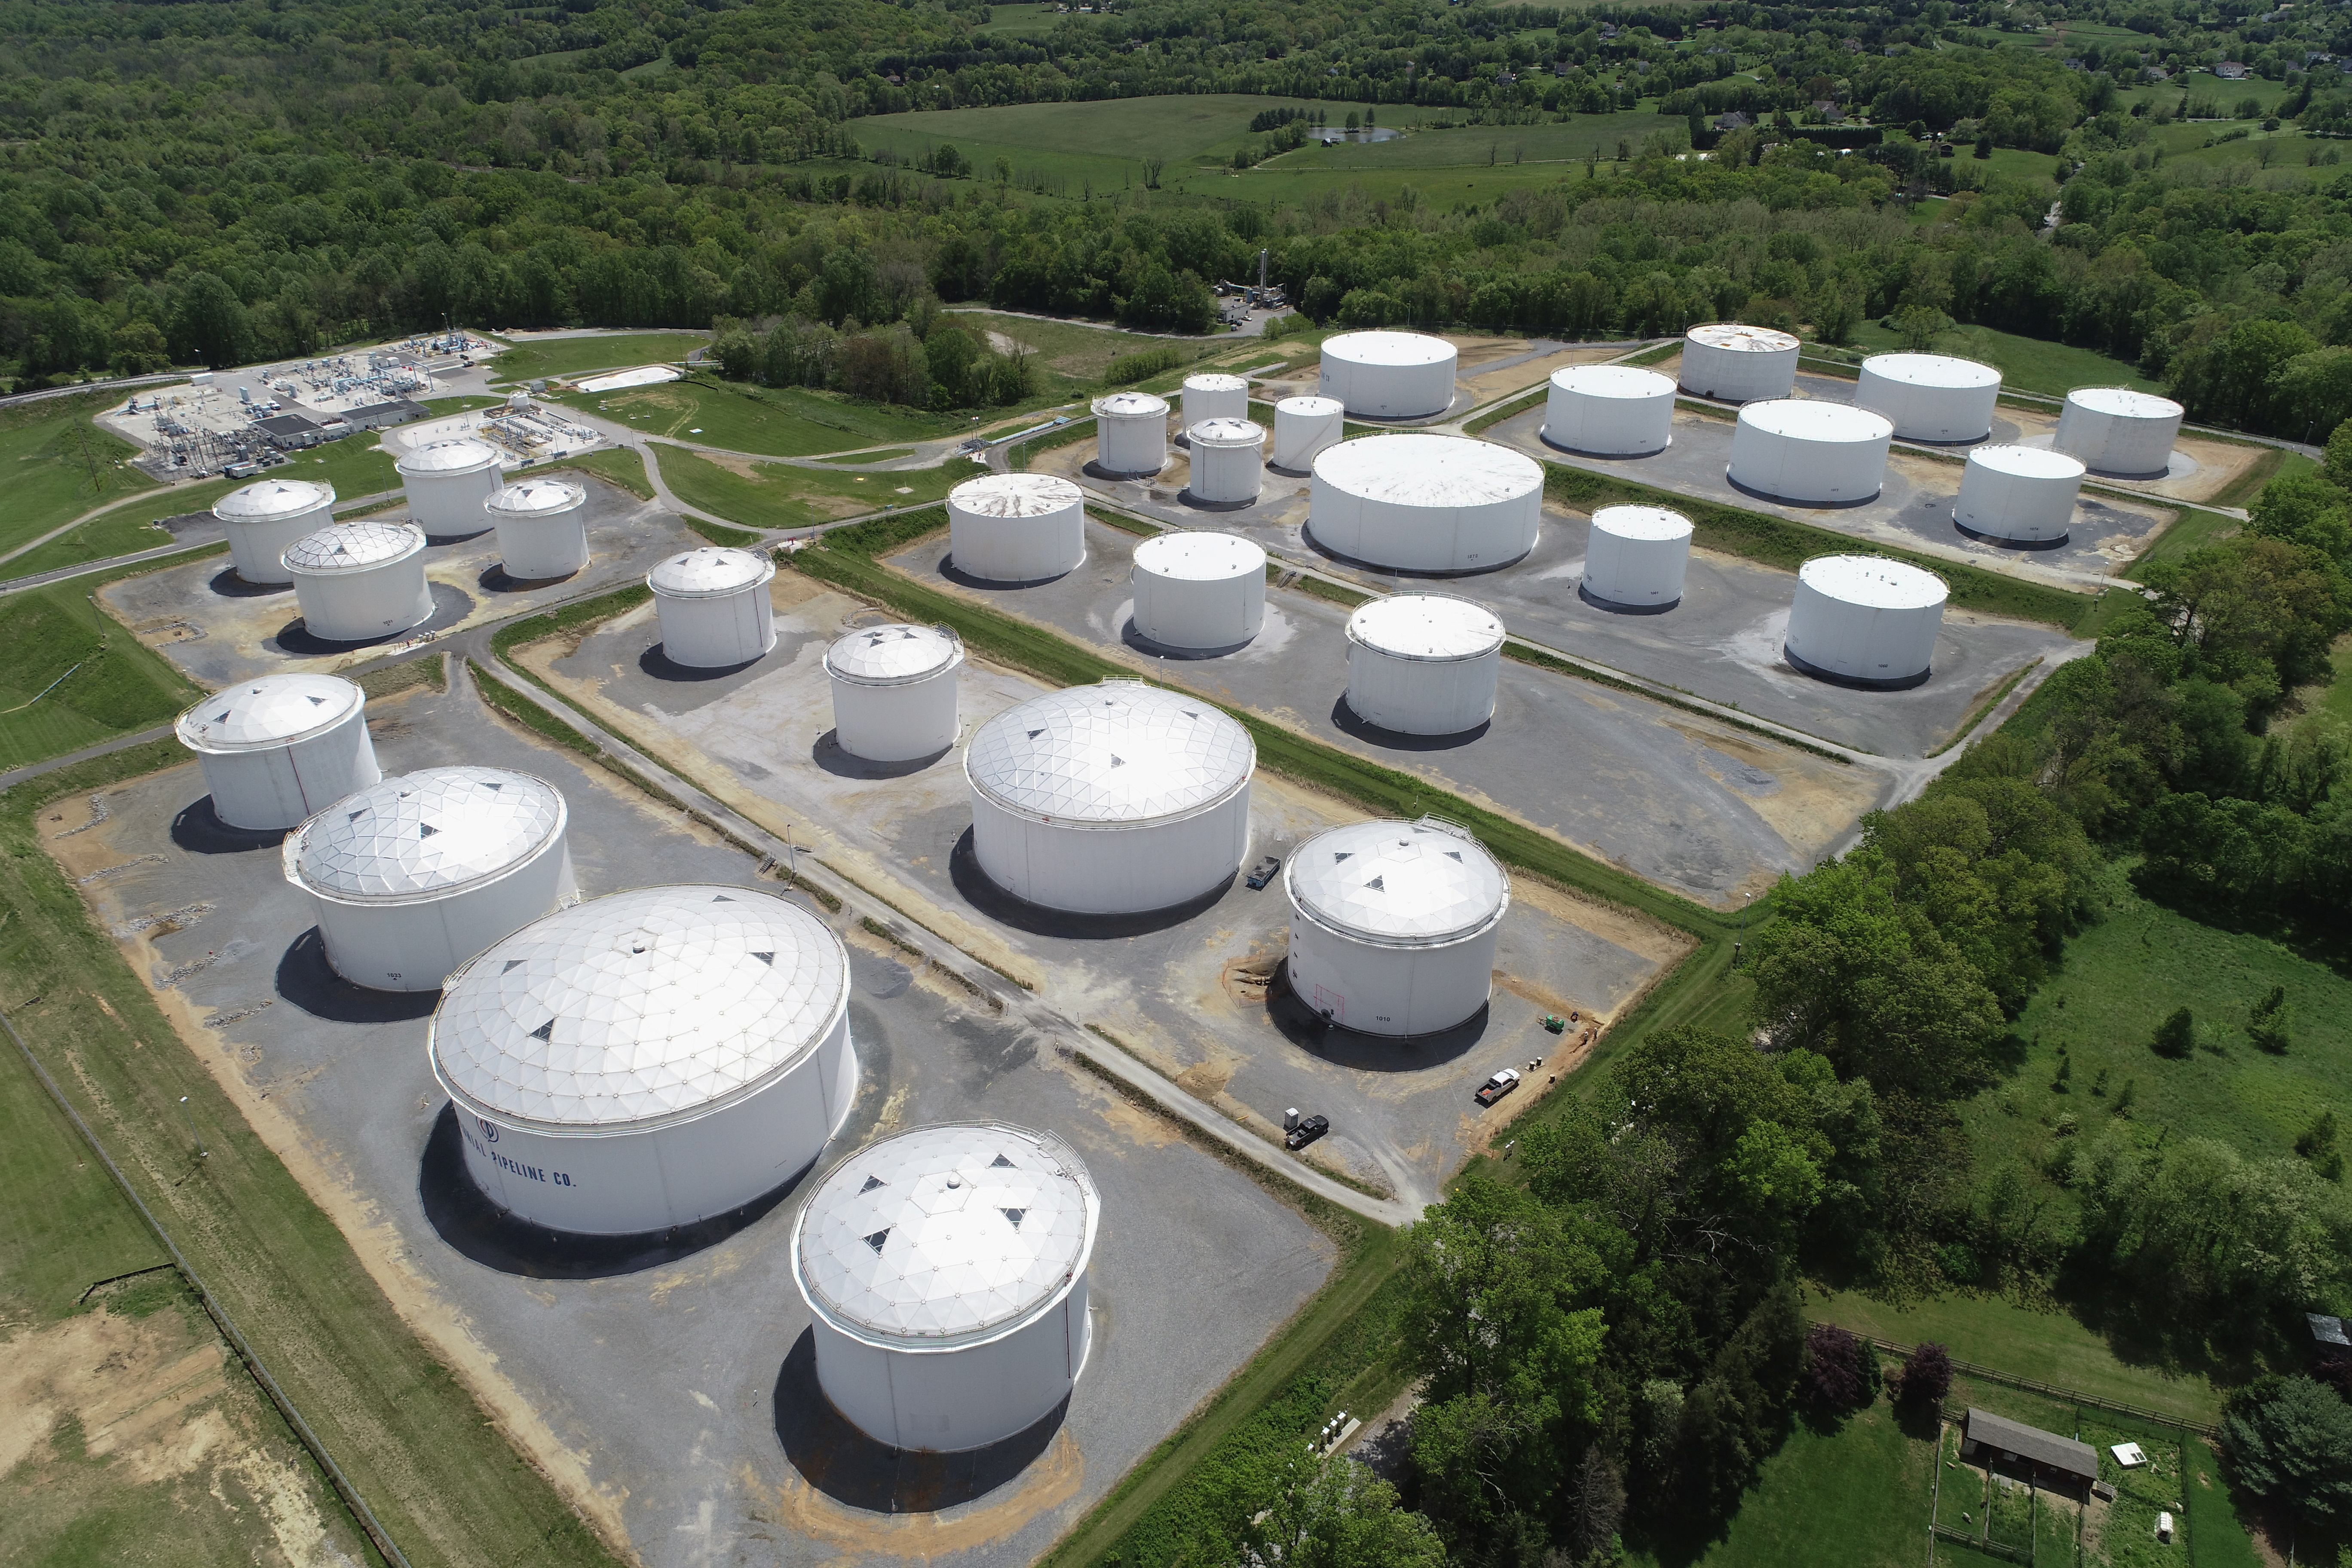 Holding tanks are seen in an aerial photograph at Colonial Pipeline's Dorsey Junction Station in Woodbine, Maryland, U.S. May 10, 2021. REUTERS/Drone Base